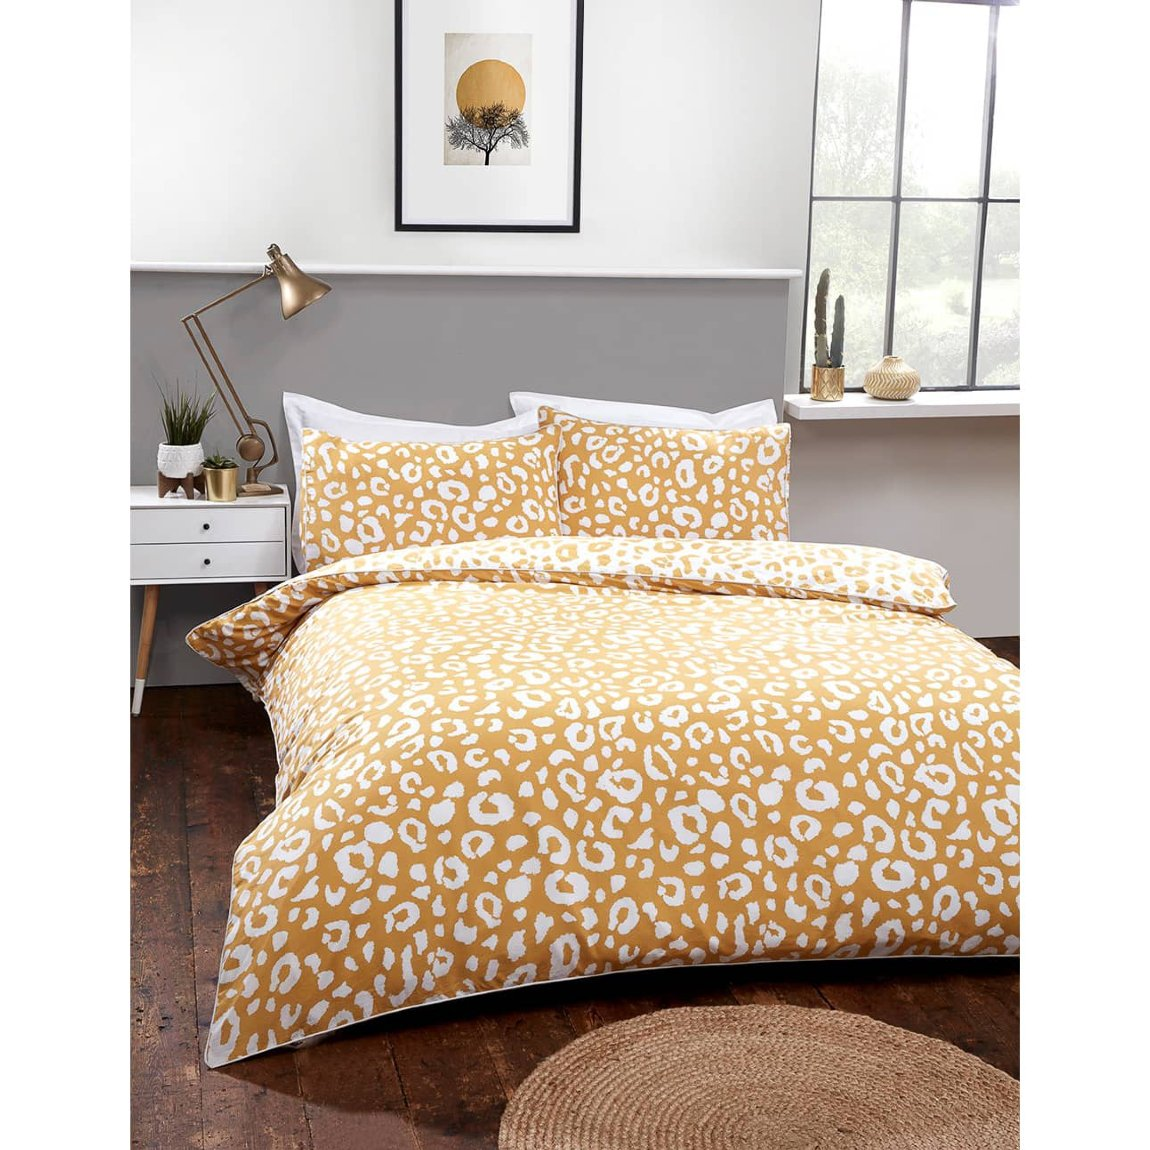 B&M bedding Loft Studio Leopard Double Duvet Set - Ochre